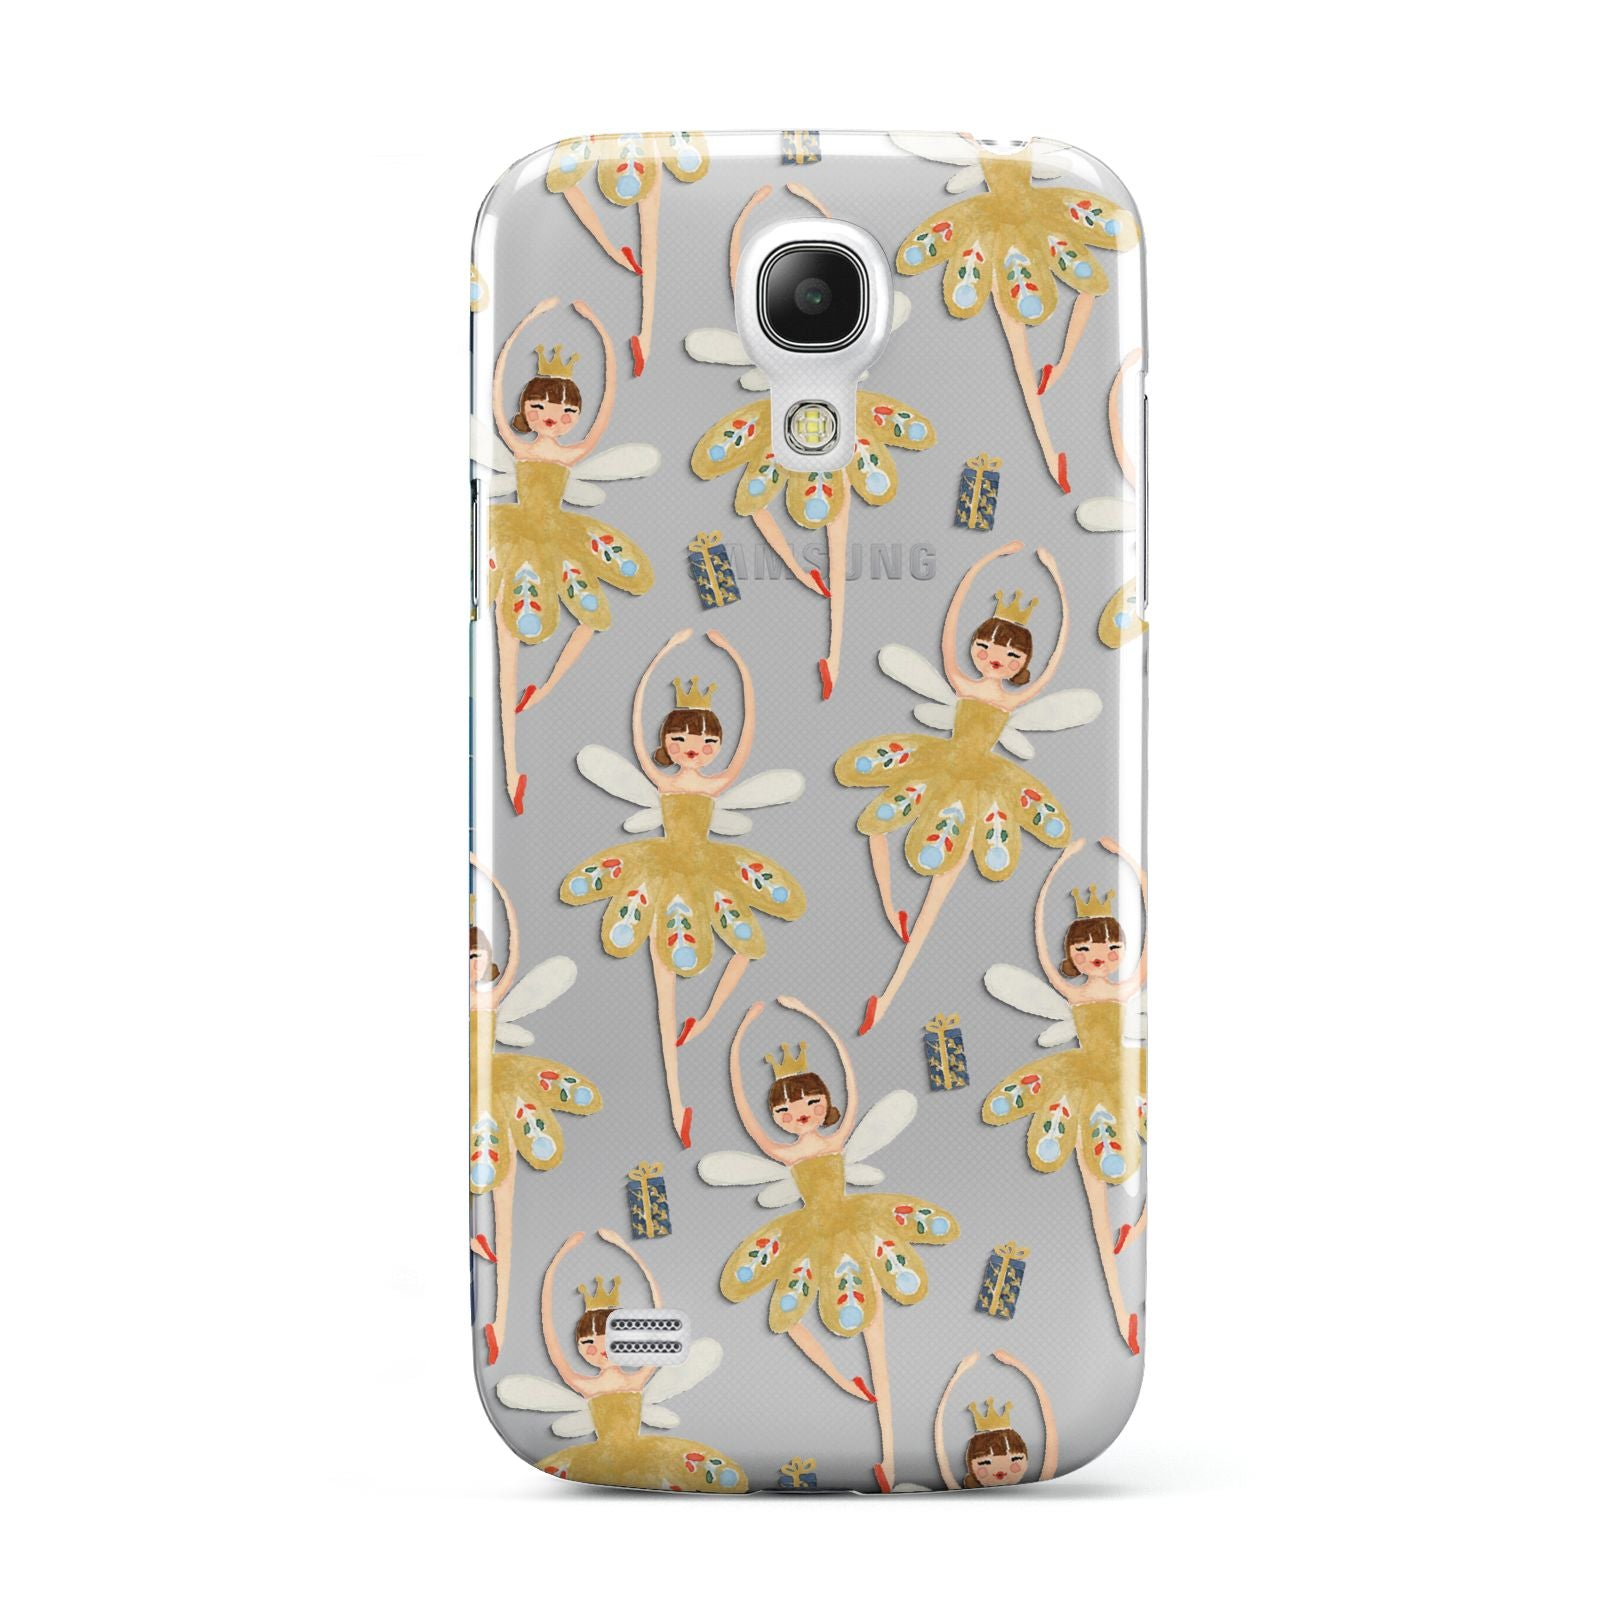 Dancing ballerina princess Samsung Galaxy S4 Mini Case